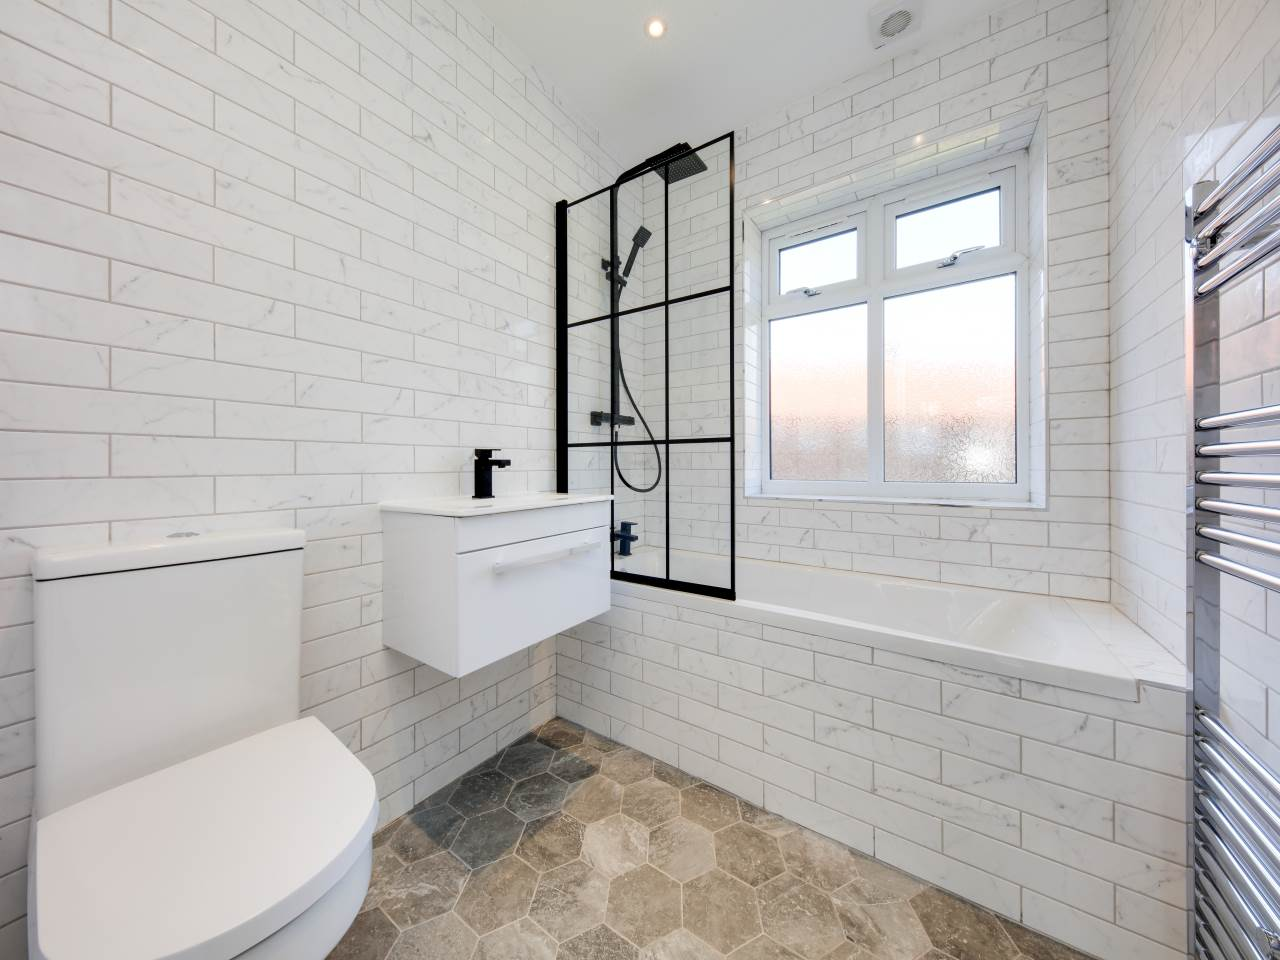 3 bed house for sale in Shernhall Street , Walthamstow  3